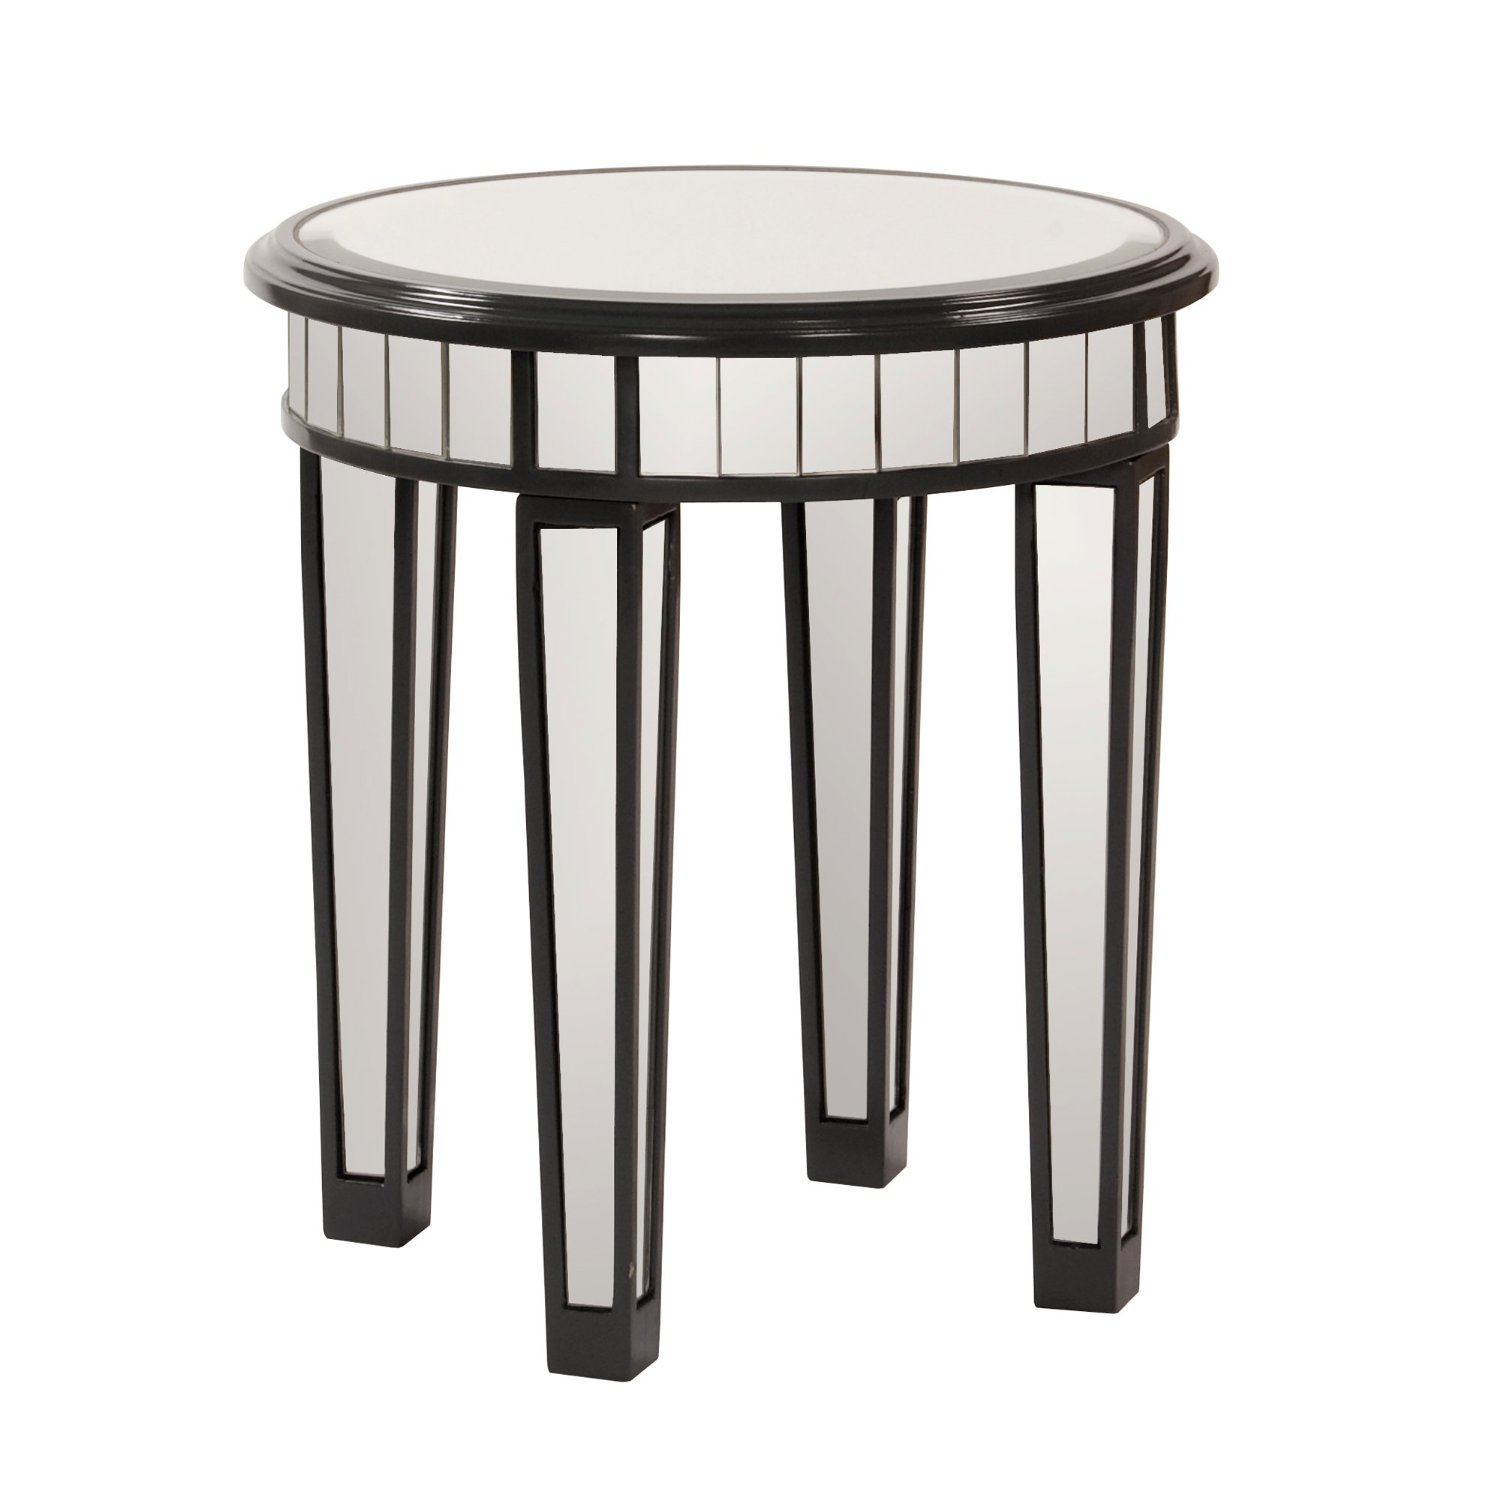 round mirrored accent table with legs and black wooden small covers semi circle west elm glass top dining grey patio furniture wood sofa monarch side acrylic trunk coffee lamps